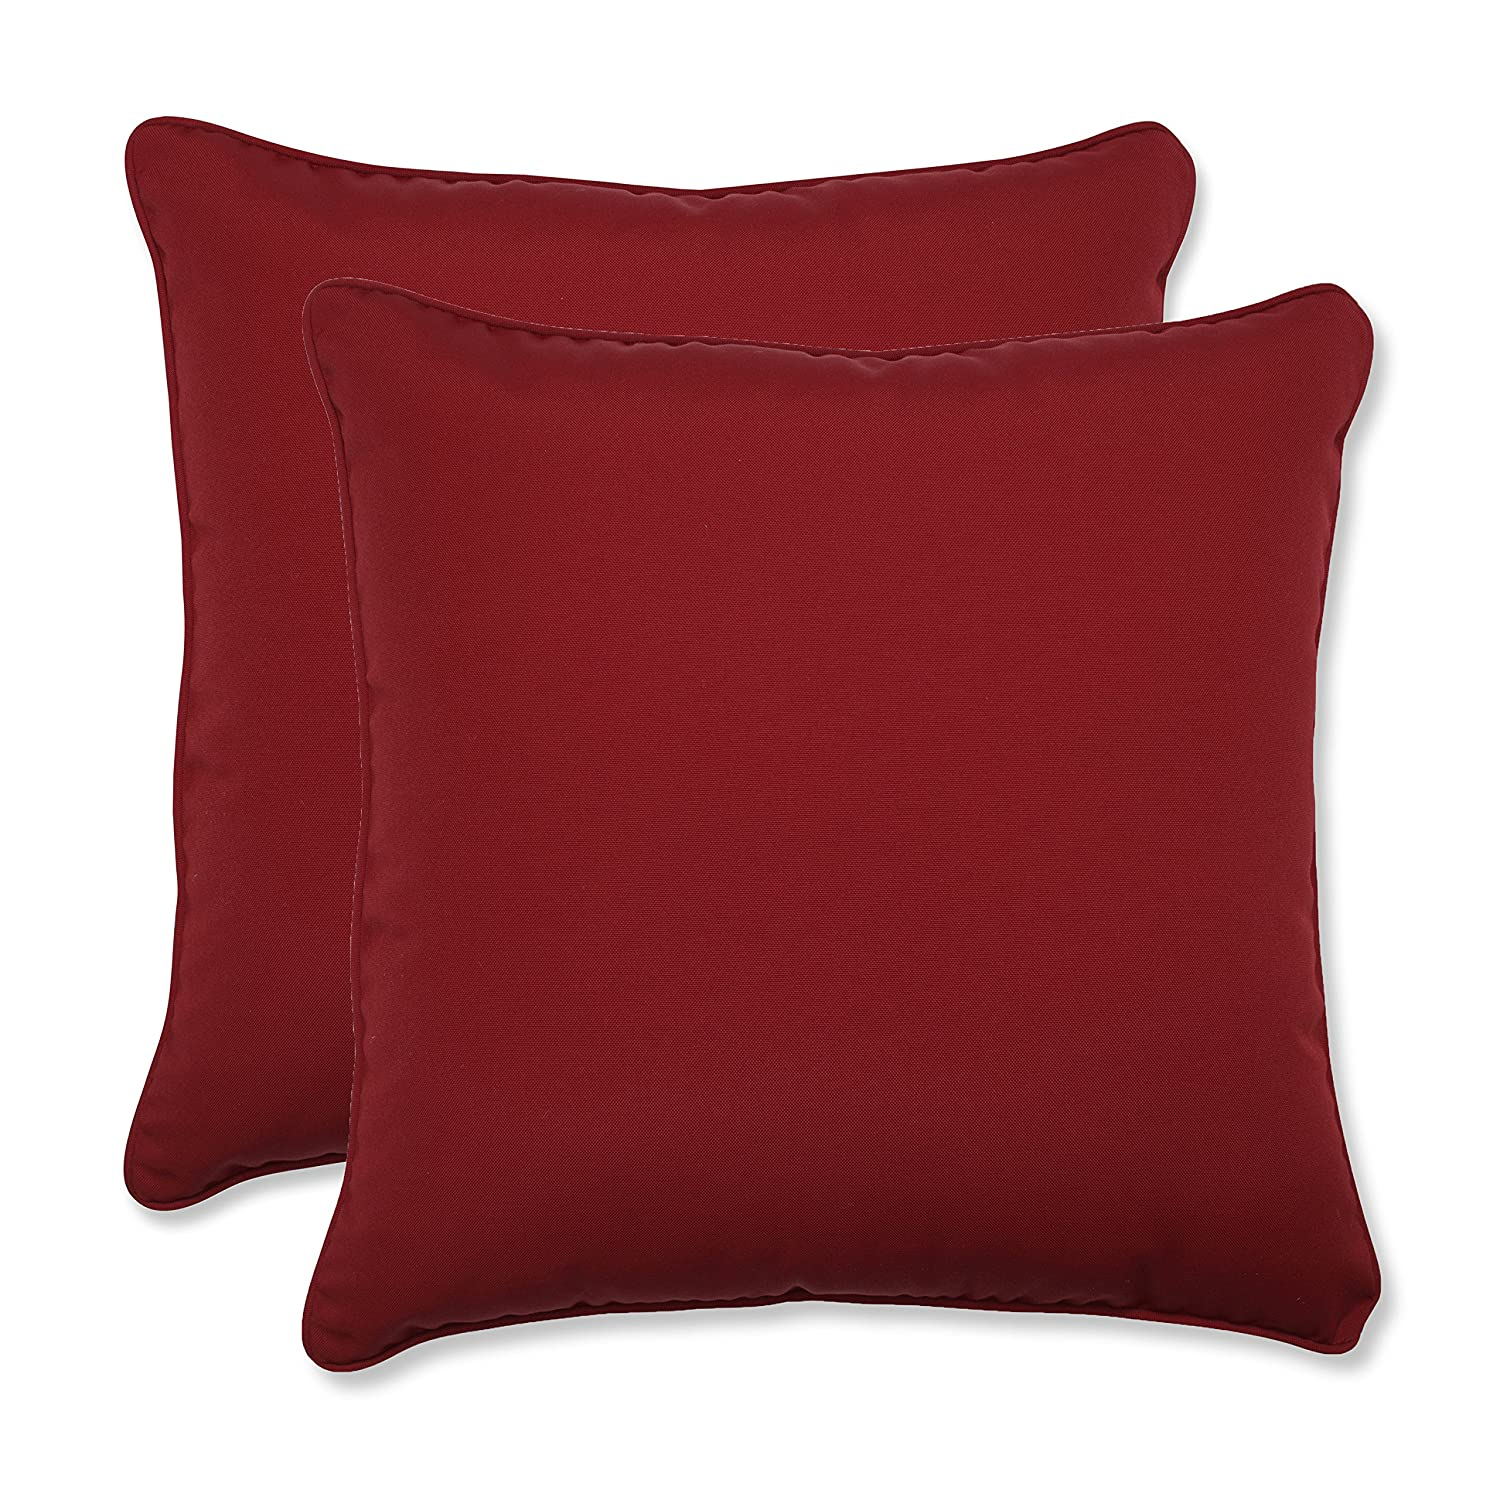 Country Tree Linen Couch Burgundy And White Throw Pillows ...